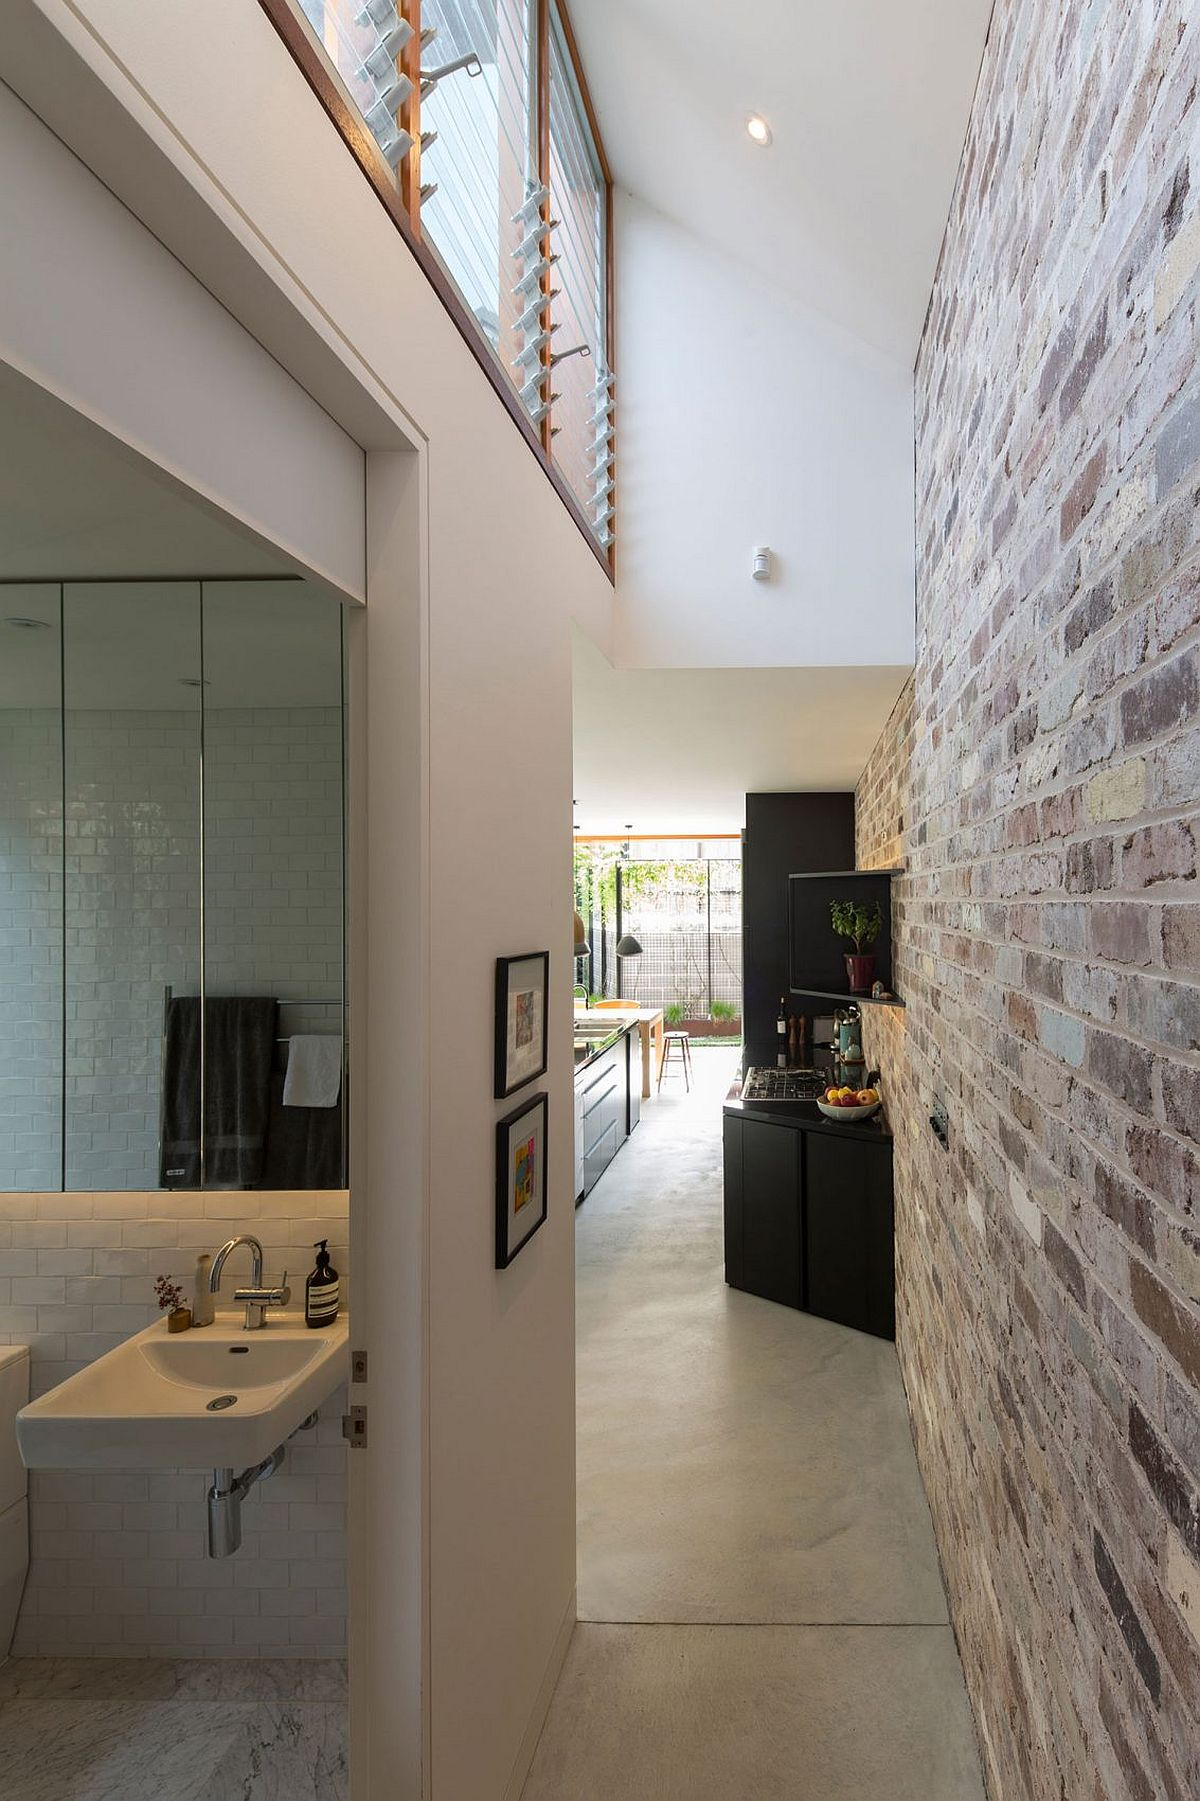 Artificial lighting coupled with natural light highlights the beauty of the exposed brick wall